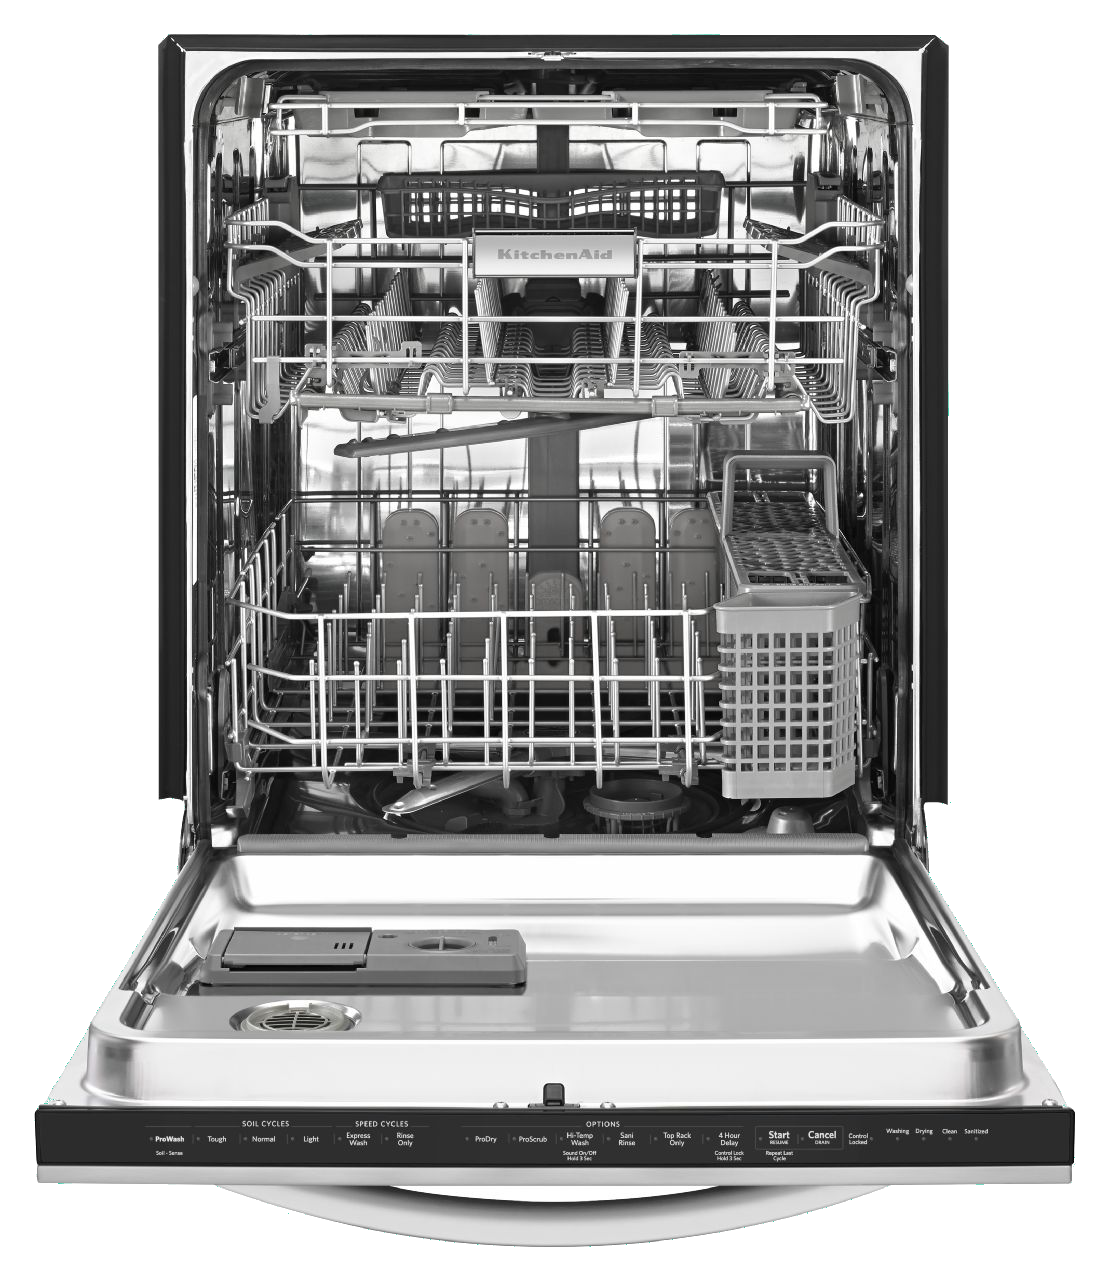 kitchenaid dishwasher repair services the appliance repair doctor